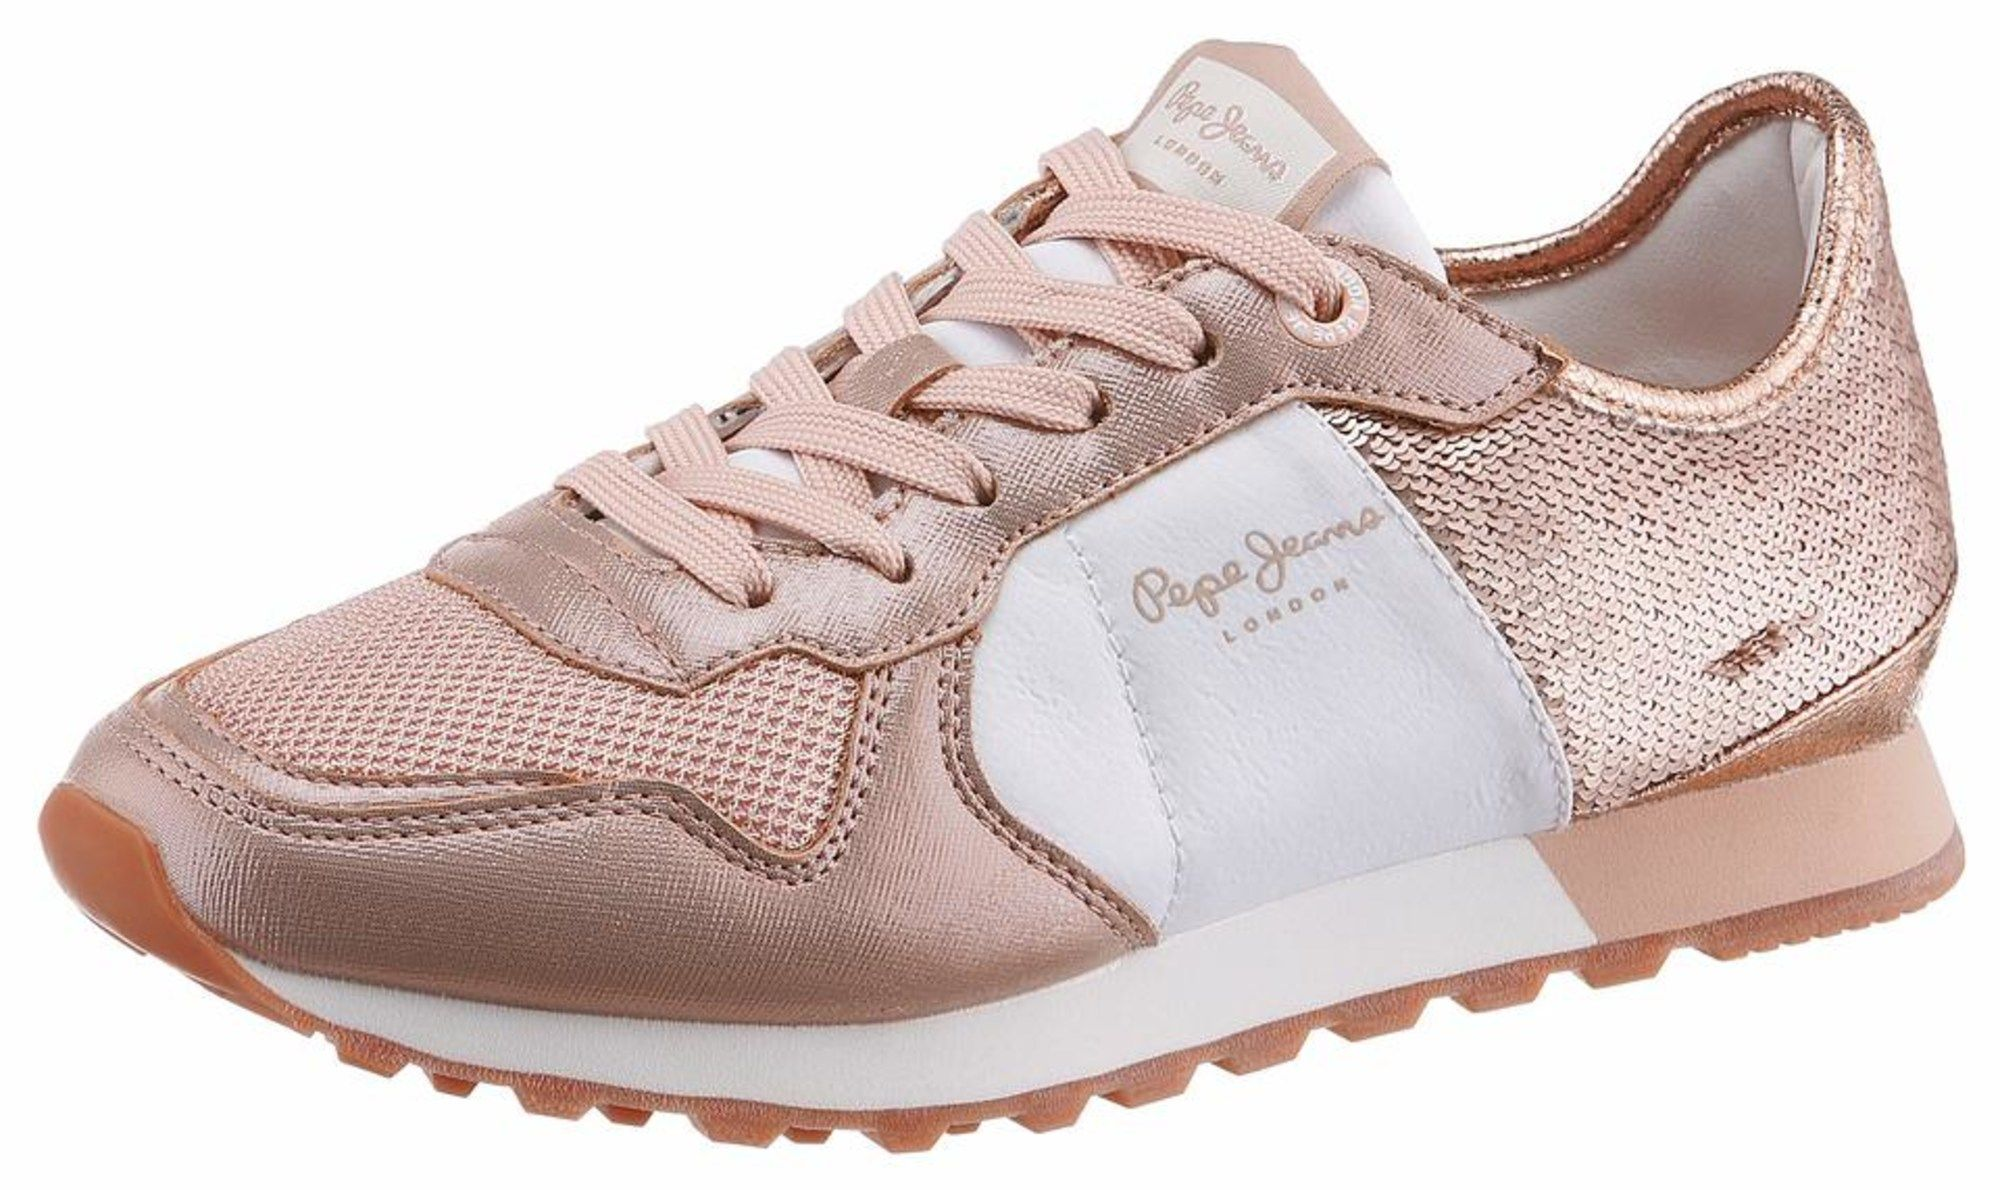 buy online 13c7a a7d7c AboutYou #PepeJeans #Low Sneaker #Schuhe #Sneaker #Pepe ...